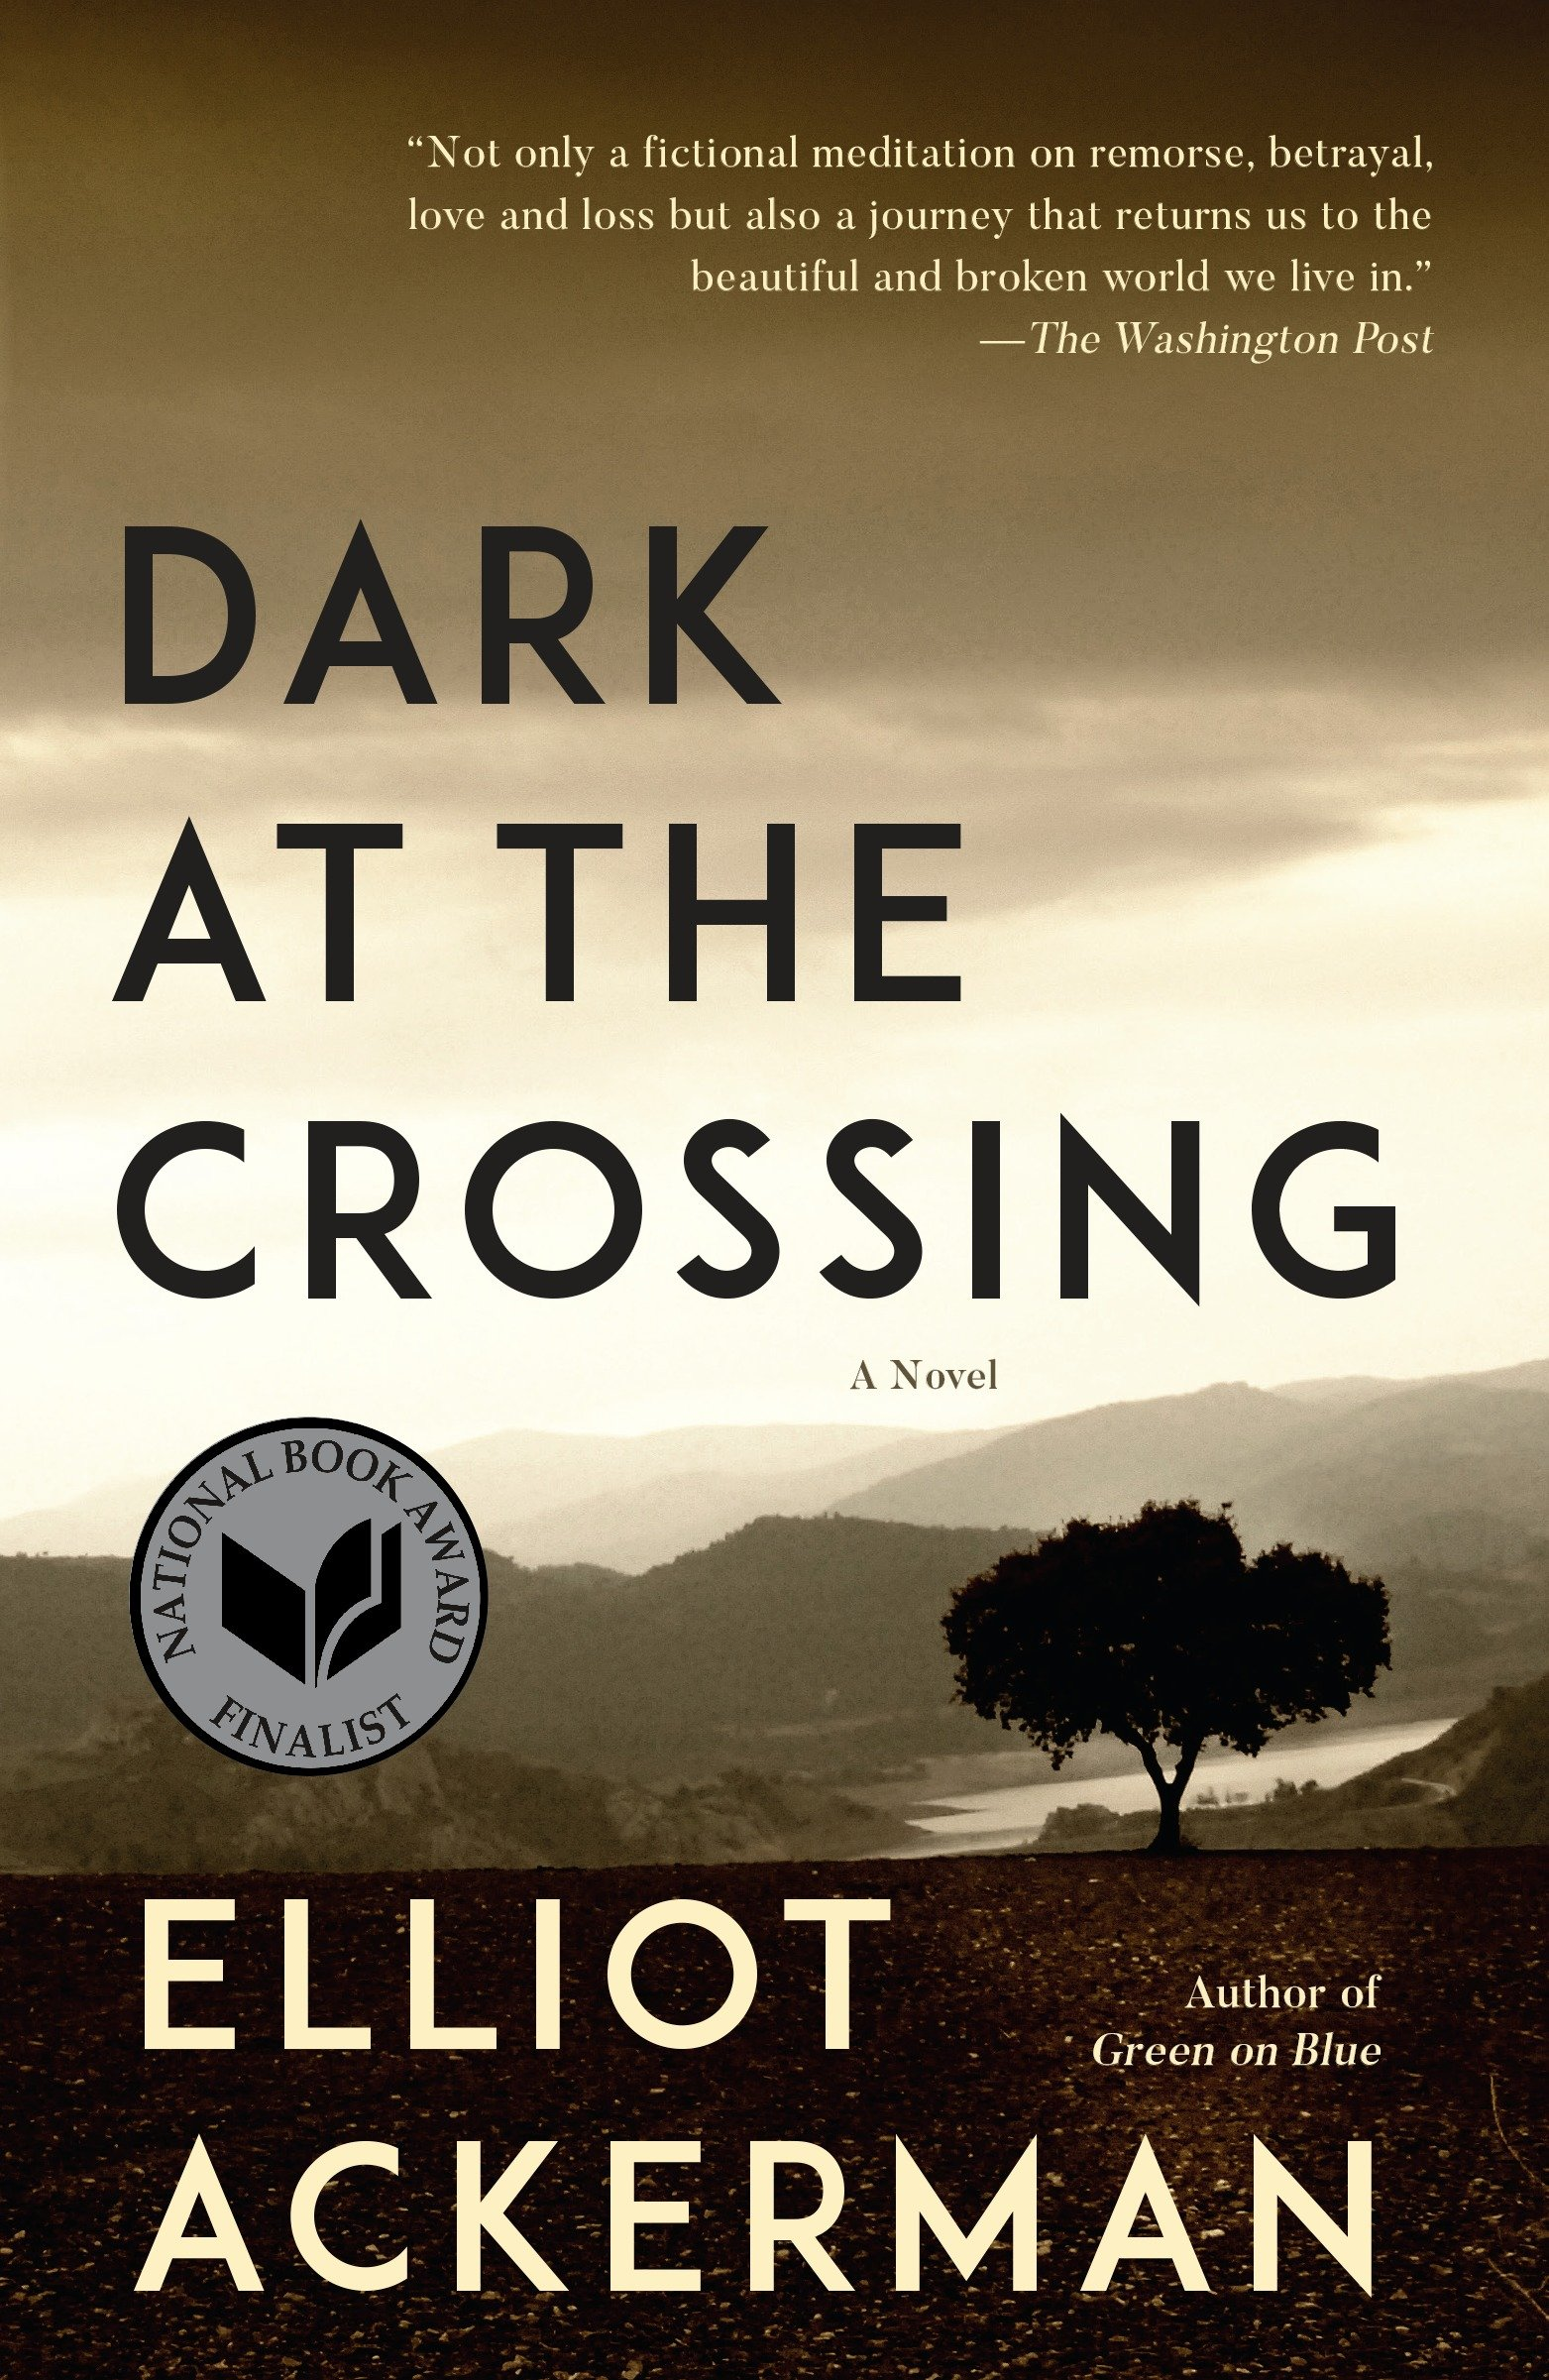 Dark at the Crossing A novel